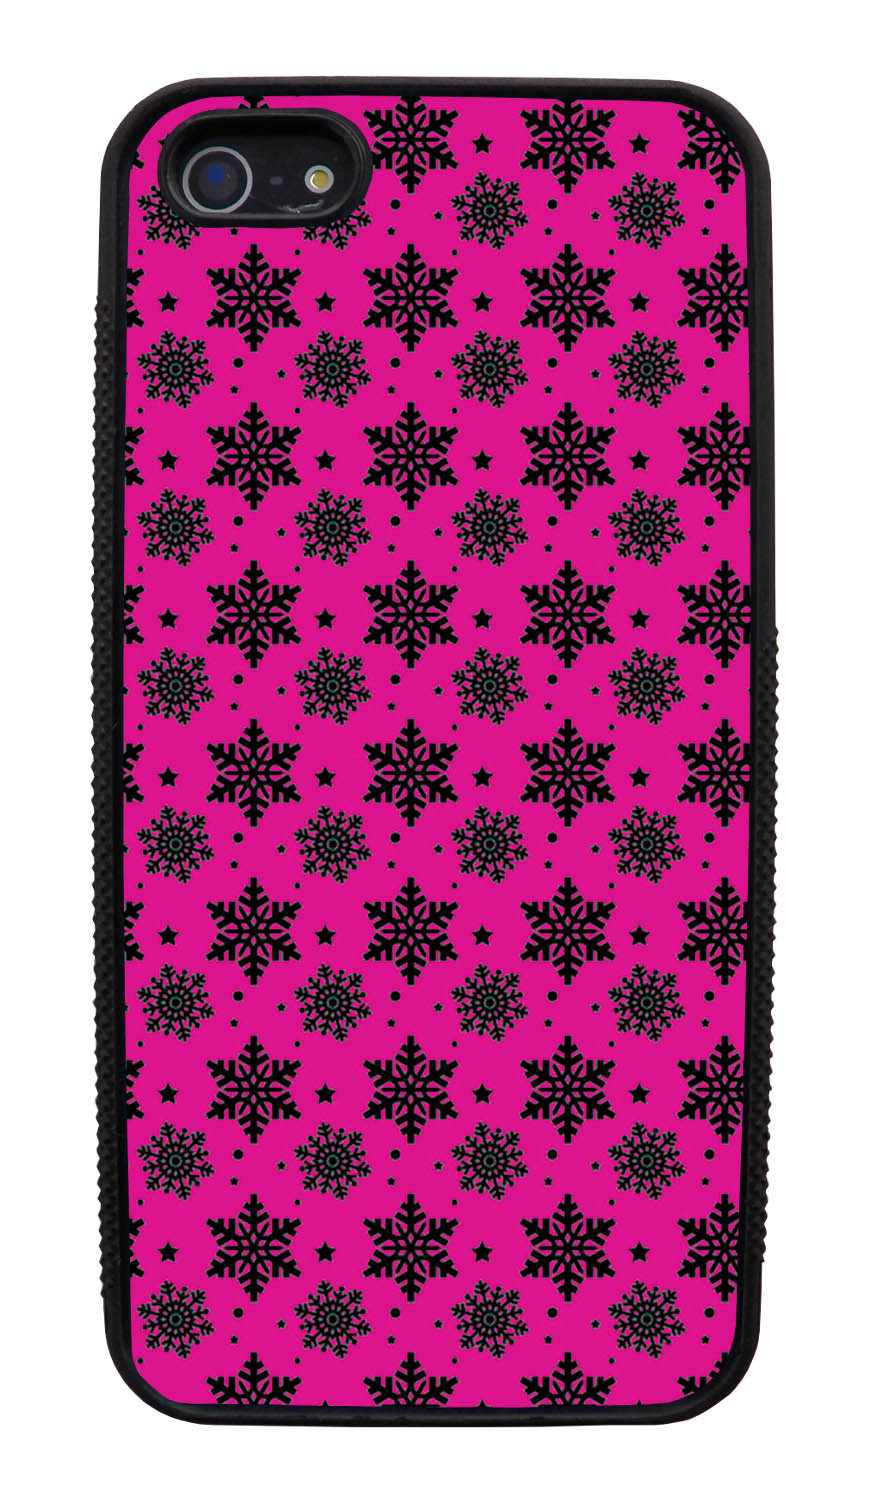 Apple iPhone 5 / 5S Pink Case - Black Snowflakes on Hot Pink - Fall And Winter - Black Slim Rubber Case